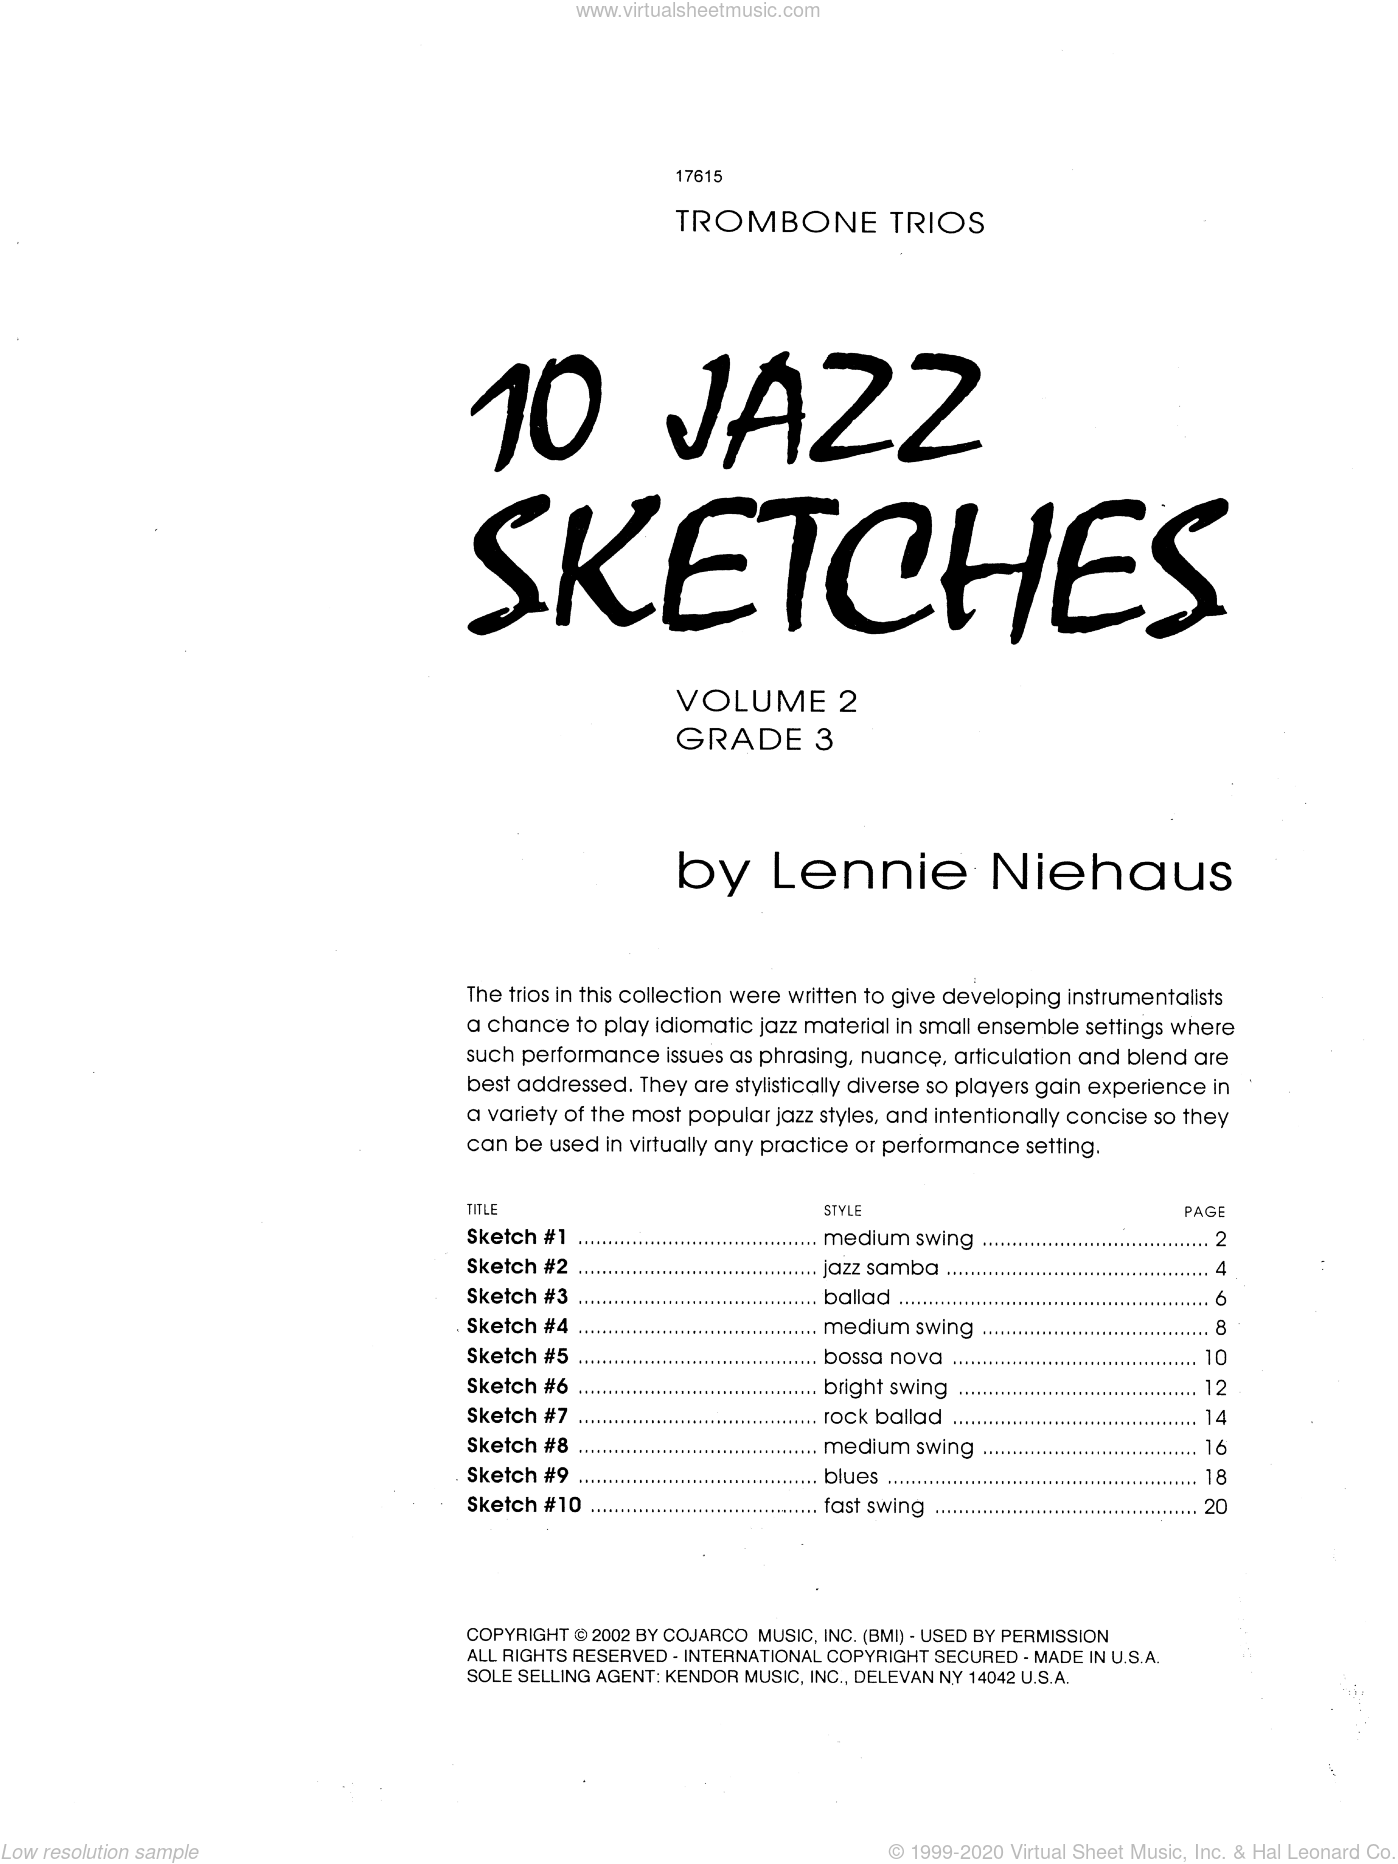 10 Jazz Sketches, Volume 2 sheet music for trombone trio by Lennie Niehaus, intermediate. Score Image Preview.